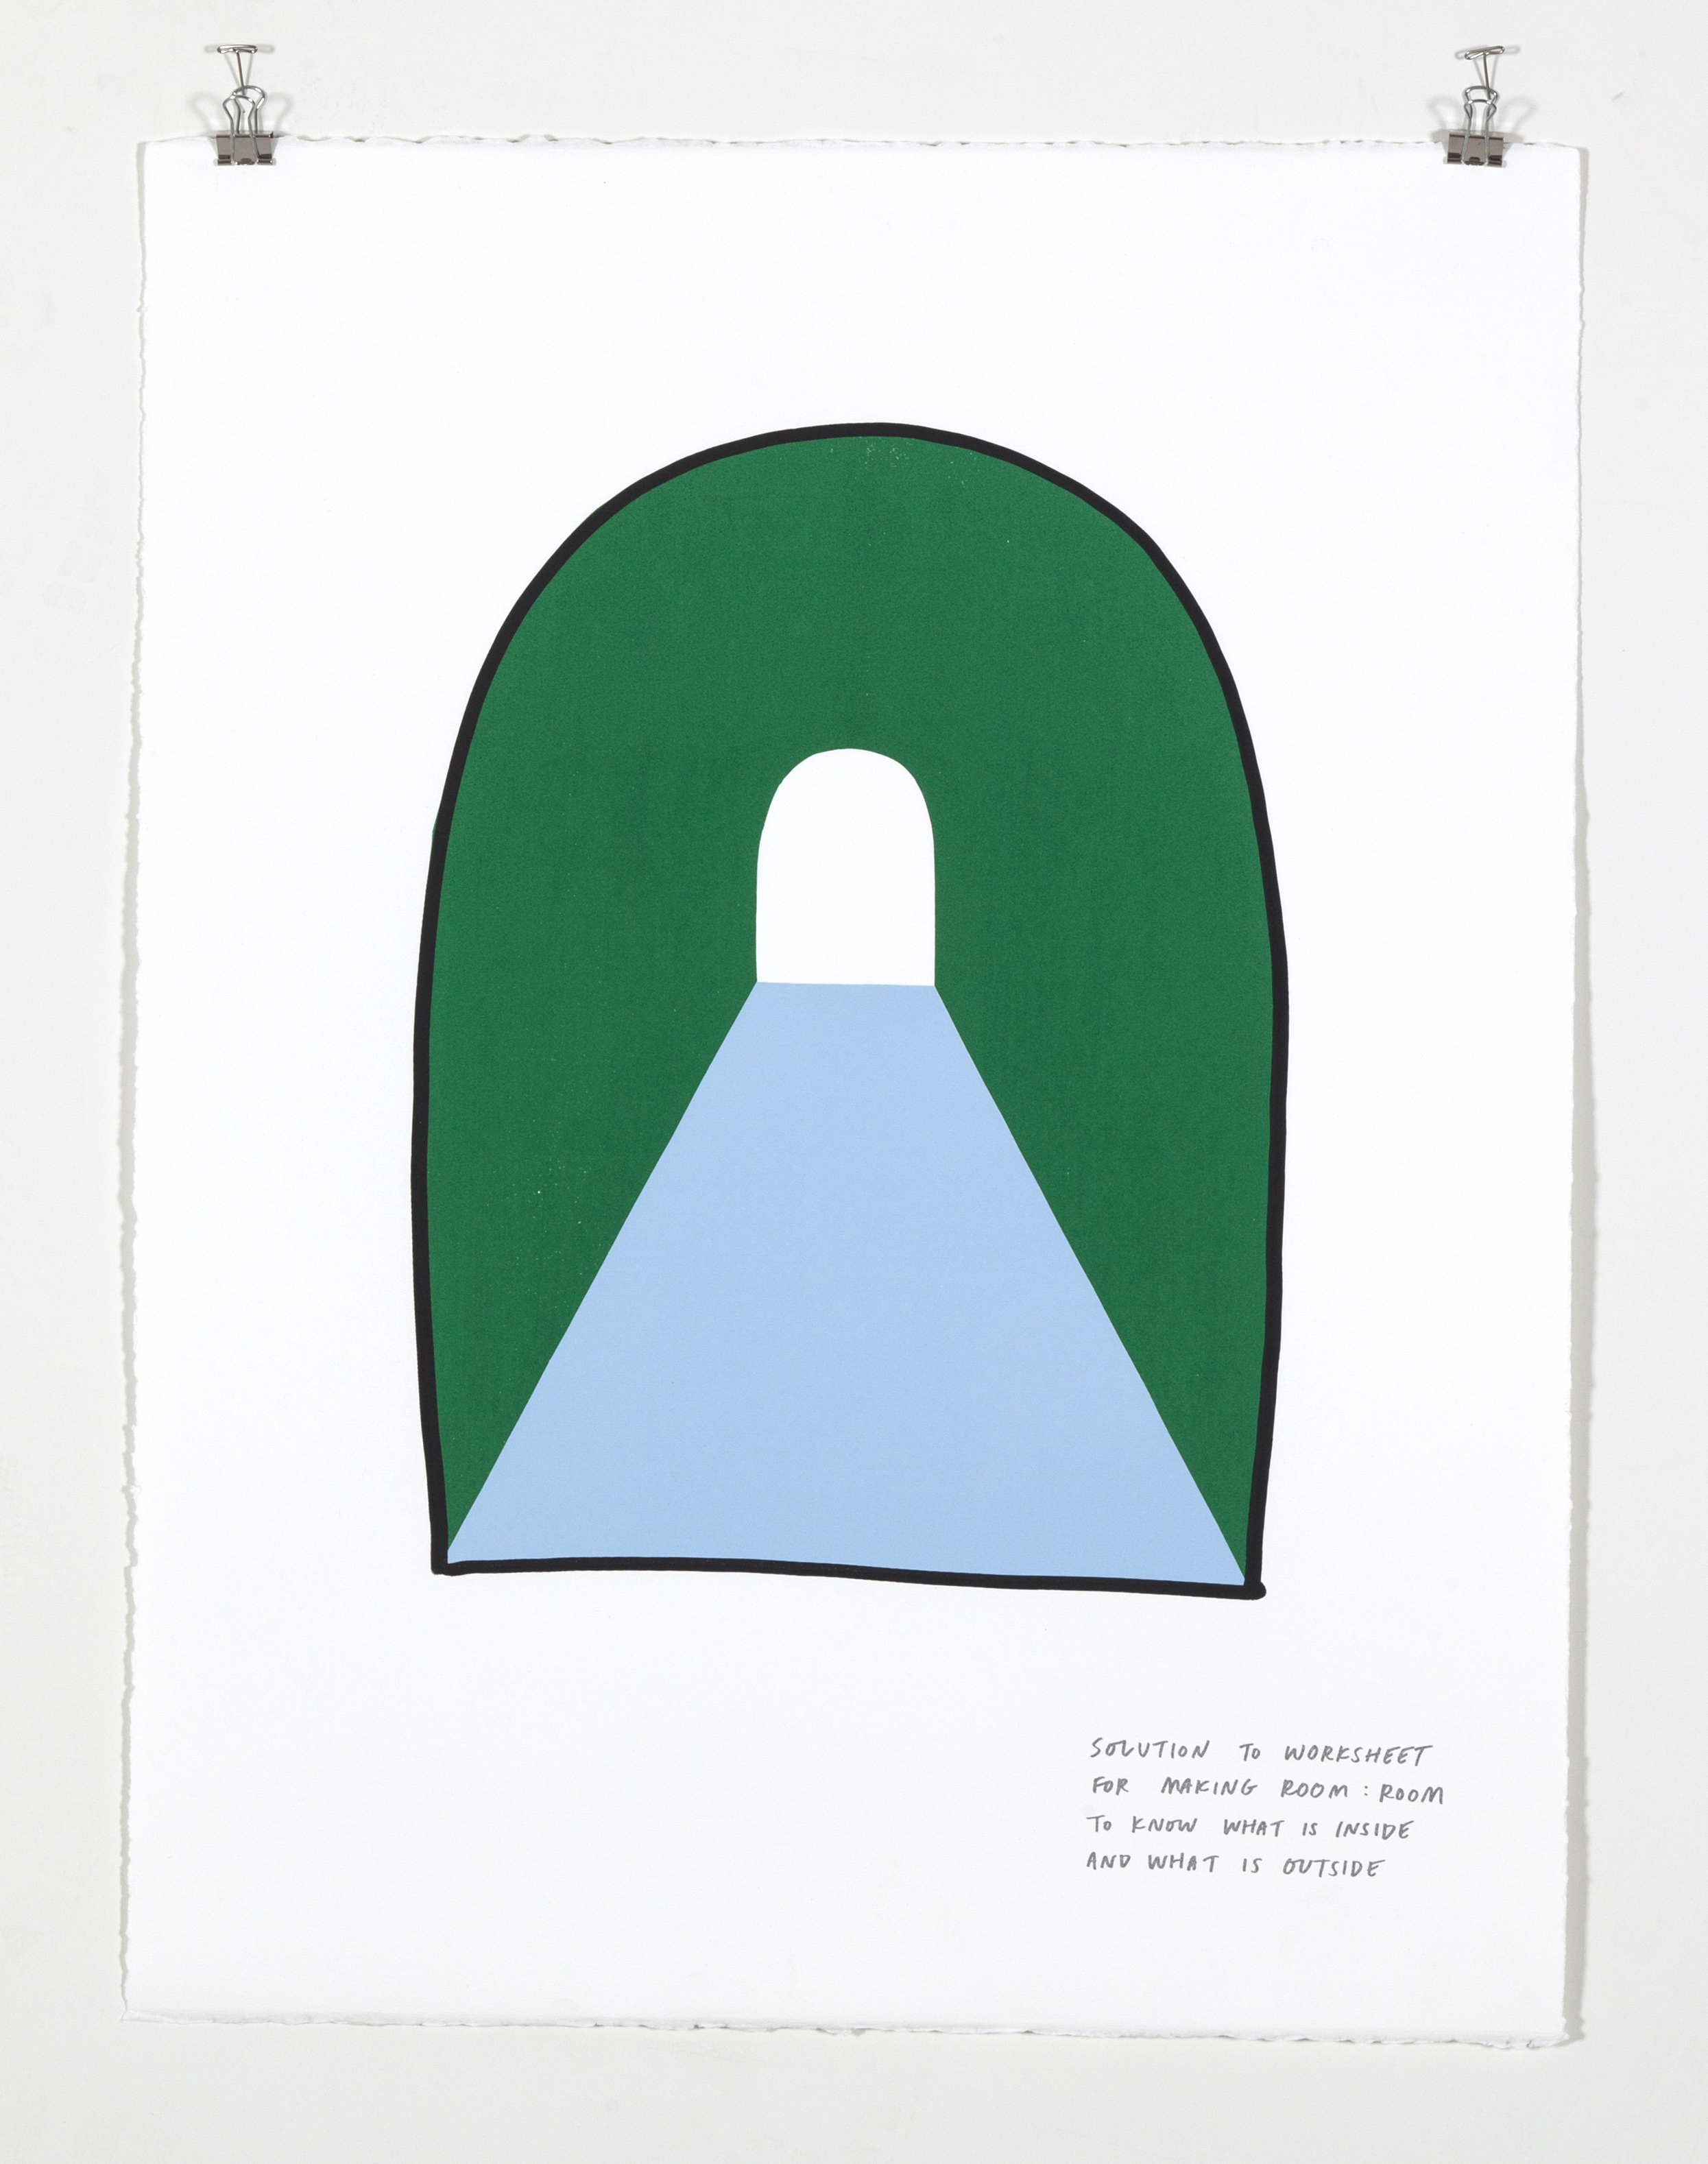 Solution to Worksheet for Making Room: Room to Know What Is Inside and What Is Outside,  2018  Four color silkscreen print on paper 19 7/8 x 25 7/8 inches